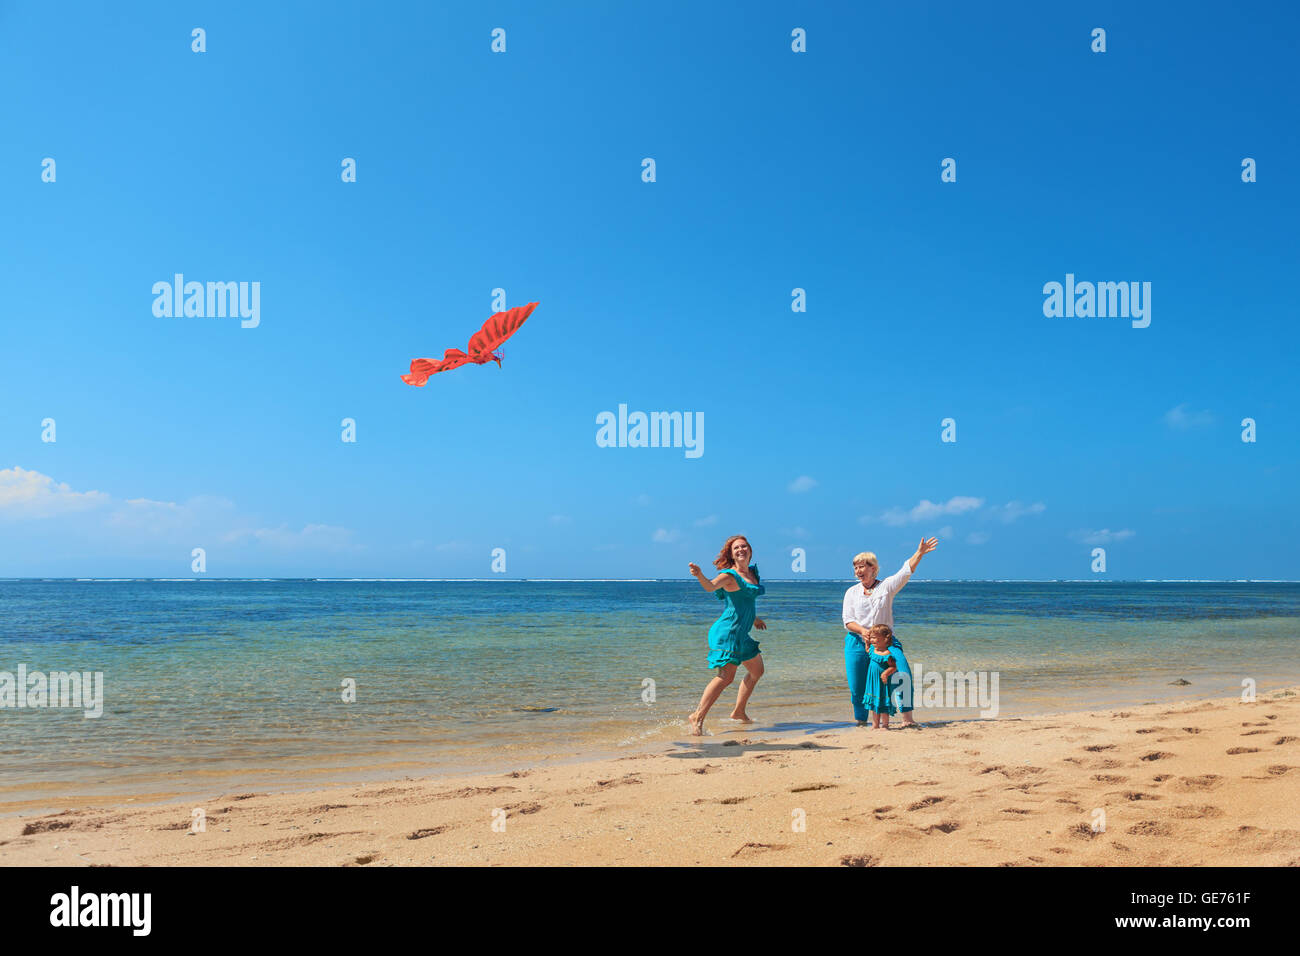 Happy family on beach - grandmother, mother, baby girl have fun, woman runs along sea surf with water splashes launching Stock Photo